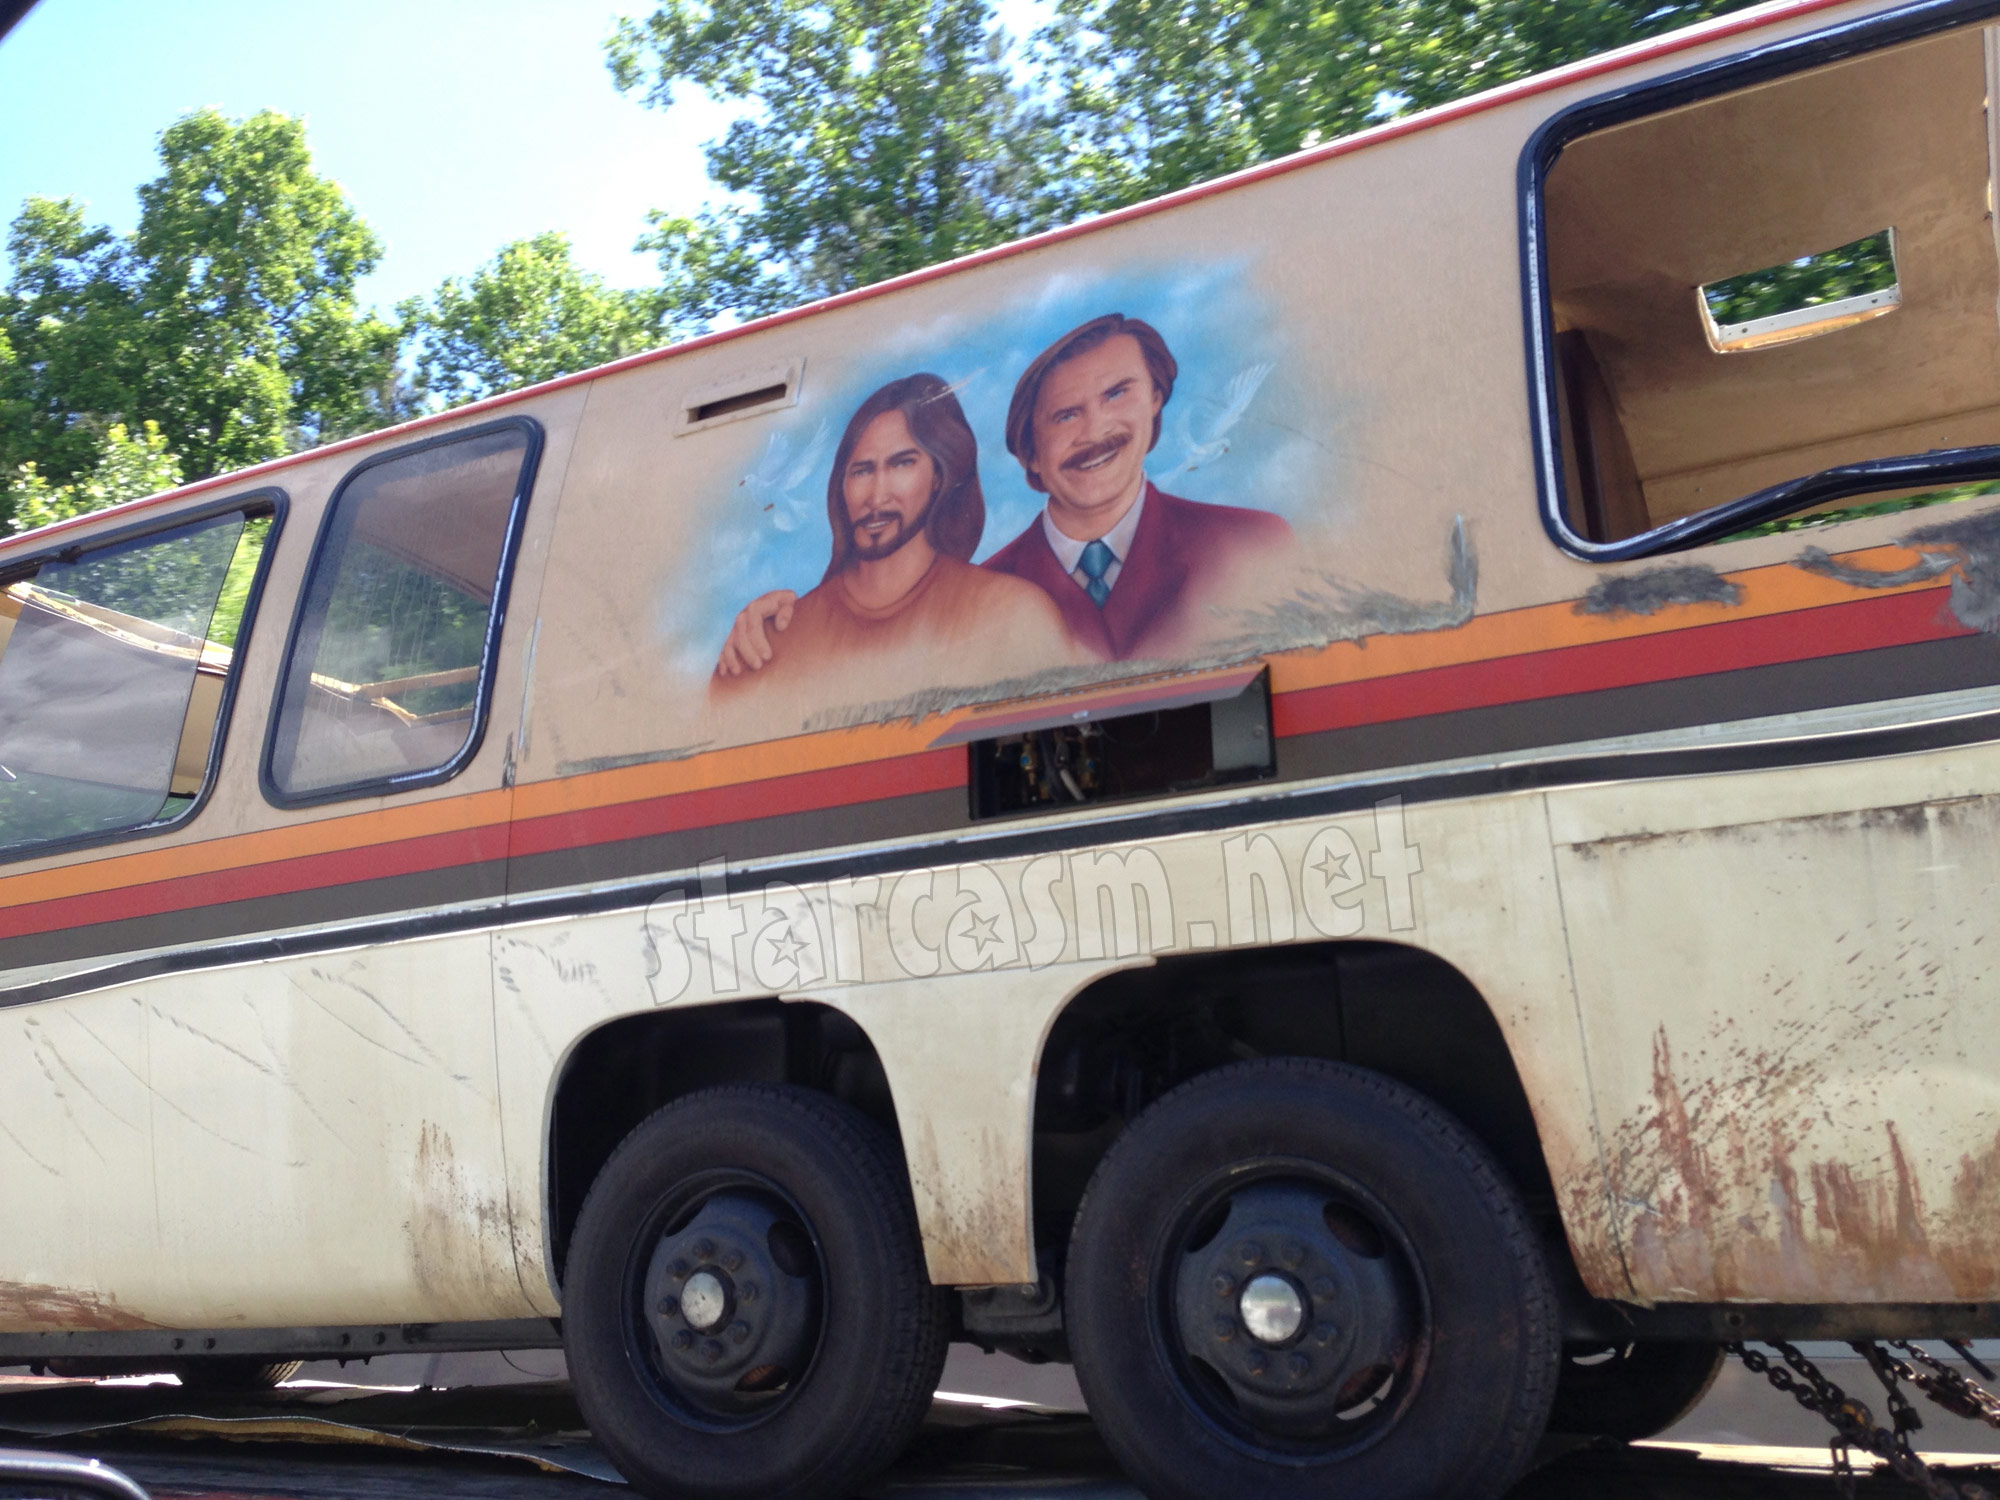 EXCLUSIVE PHOTOS Ron Burgundy & Jesus RV from Anchorman 2 gets totaled